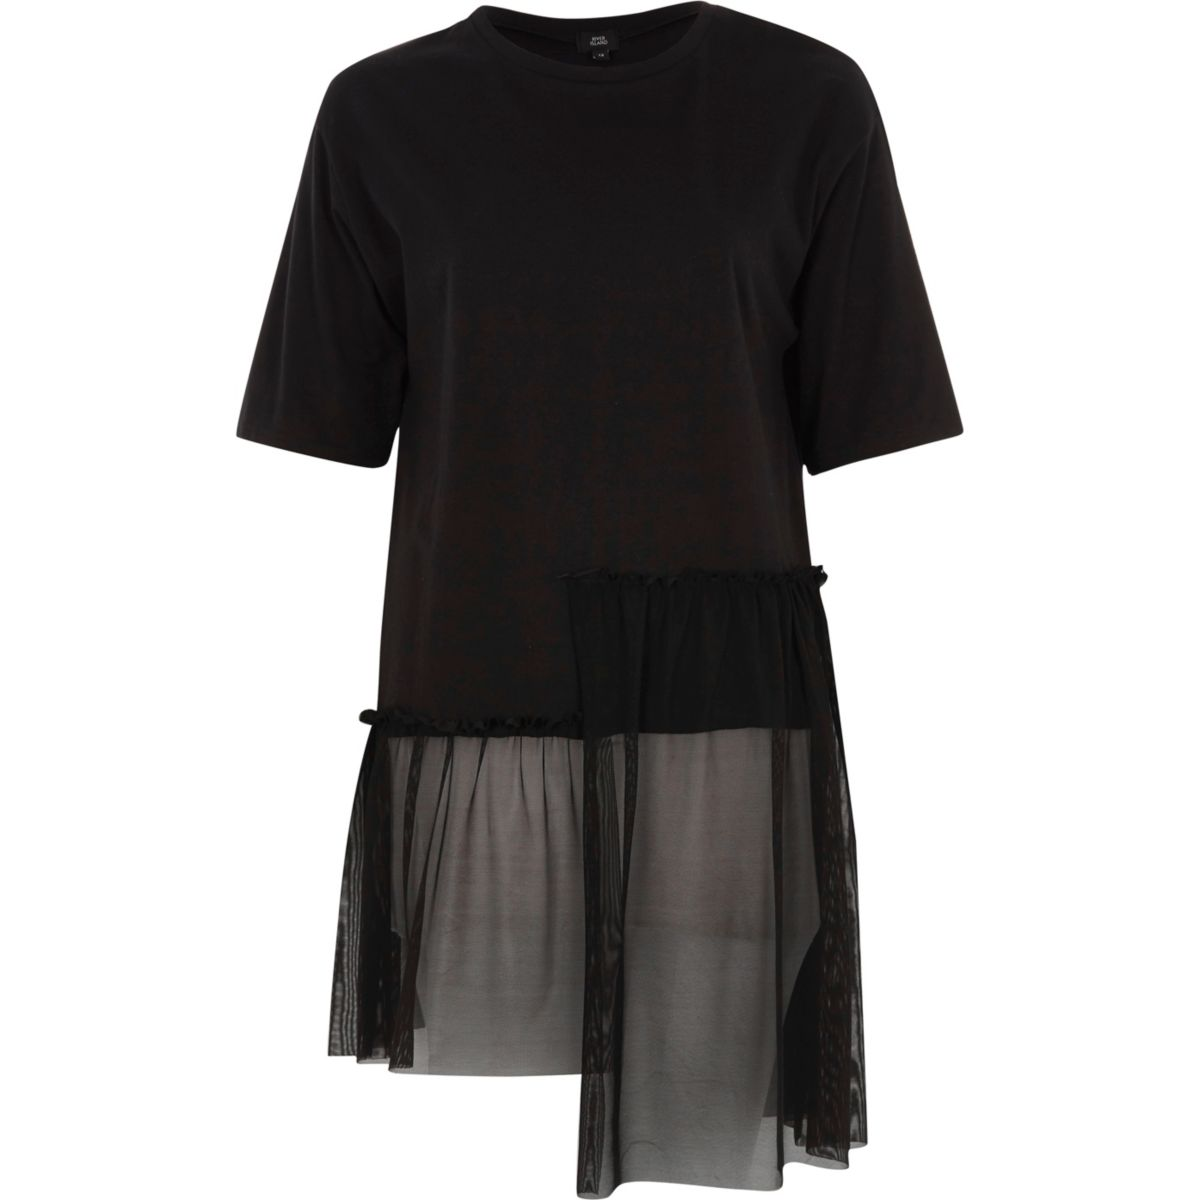 Black longline mesh stepped hem T-shirt